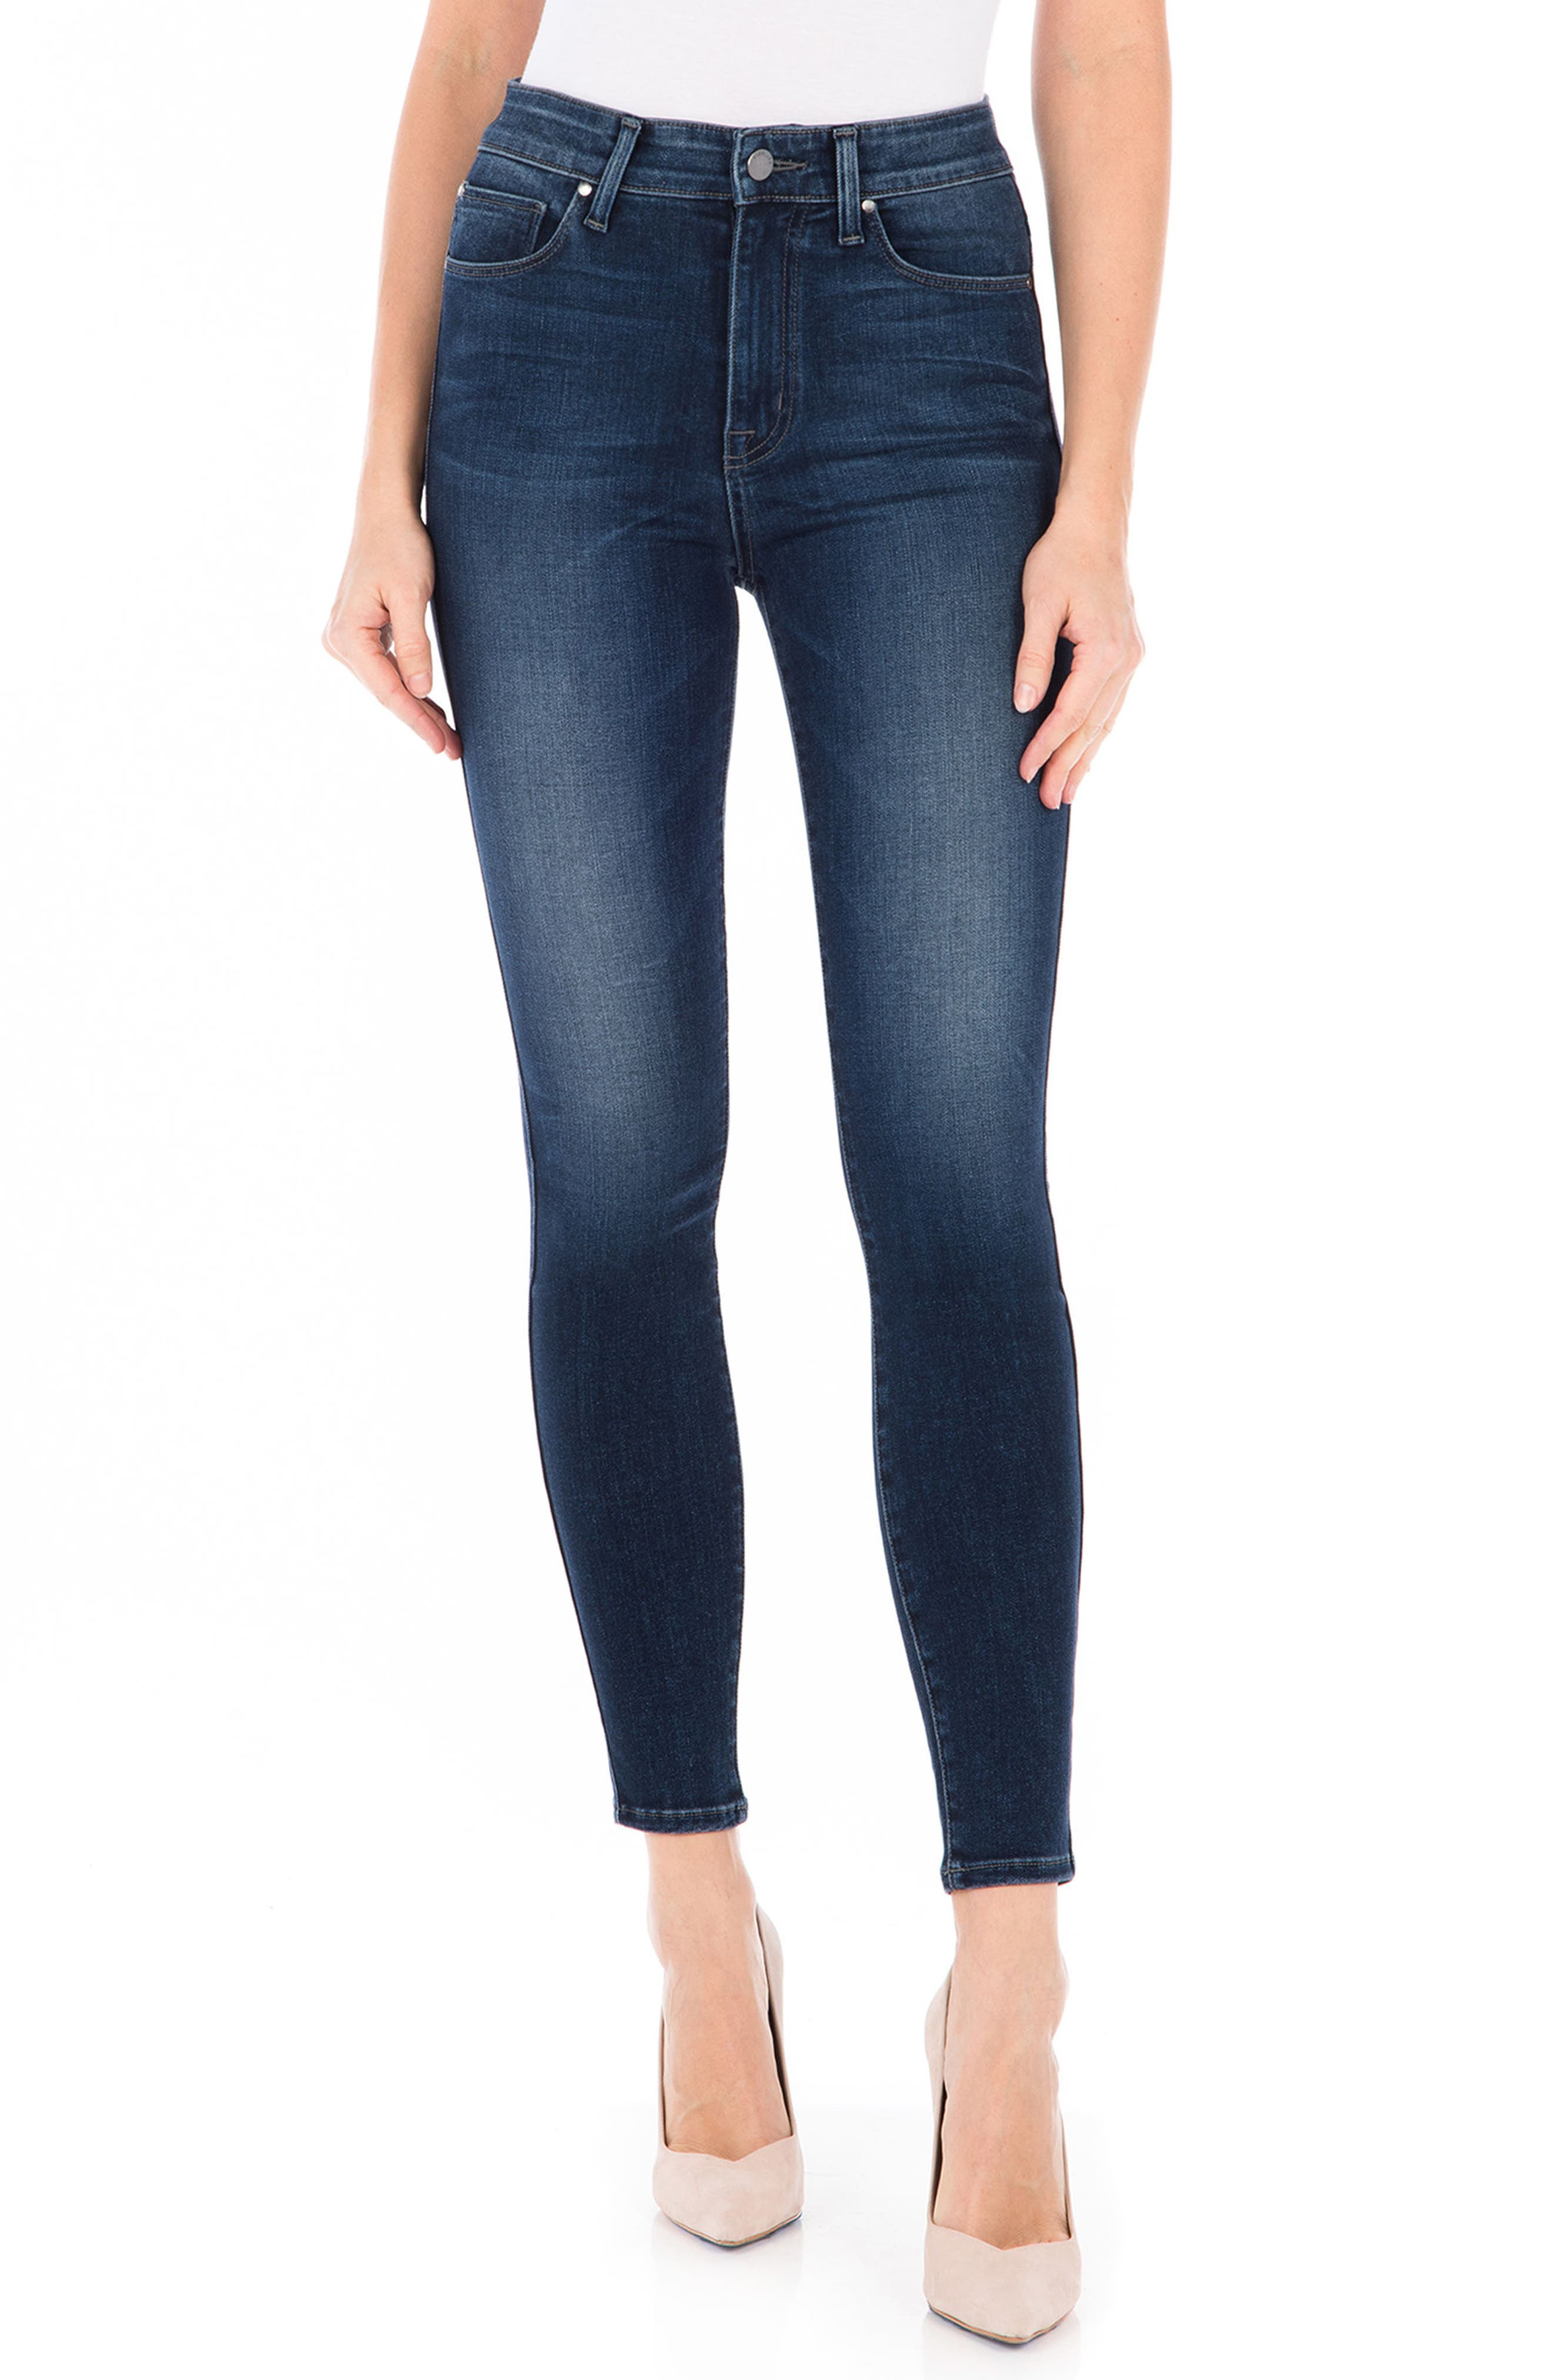 Luna High Waist Skinny Jeans,                             Main thumbnail 1, color,                             BLUE SUEDE